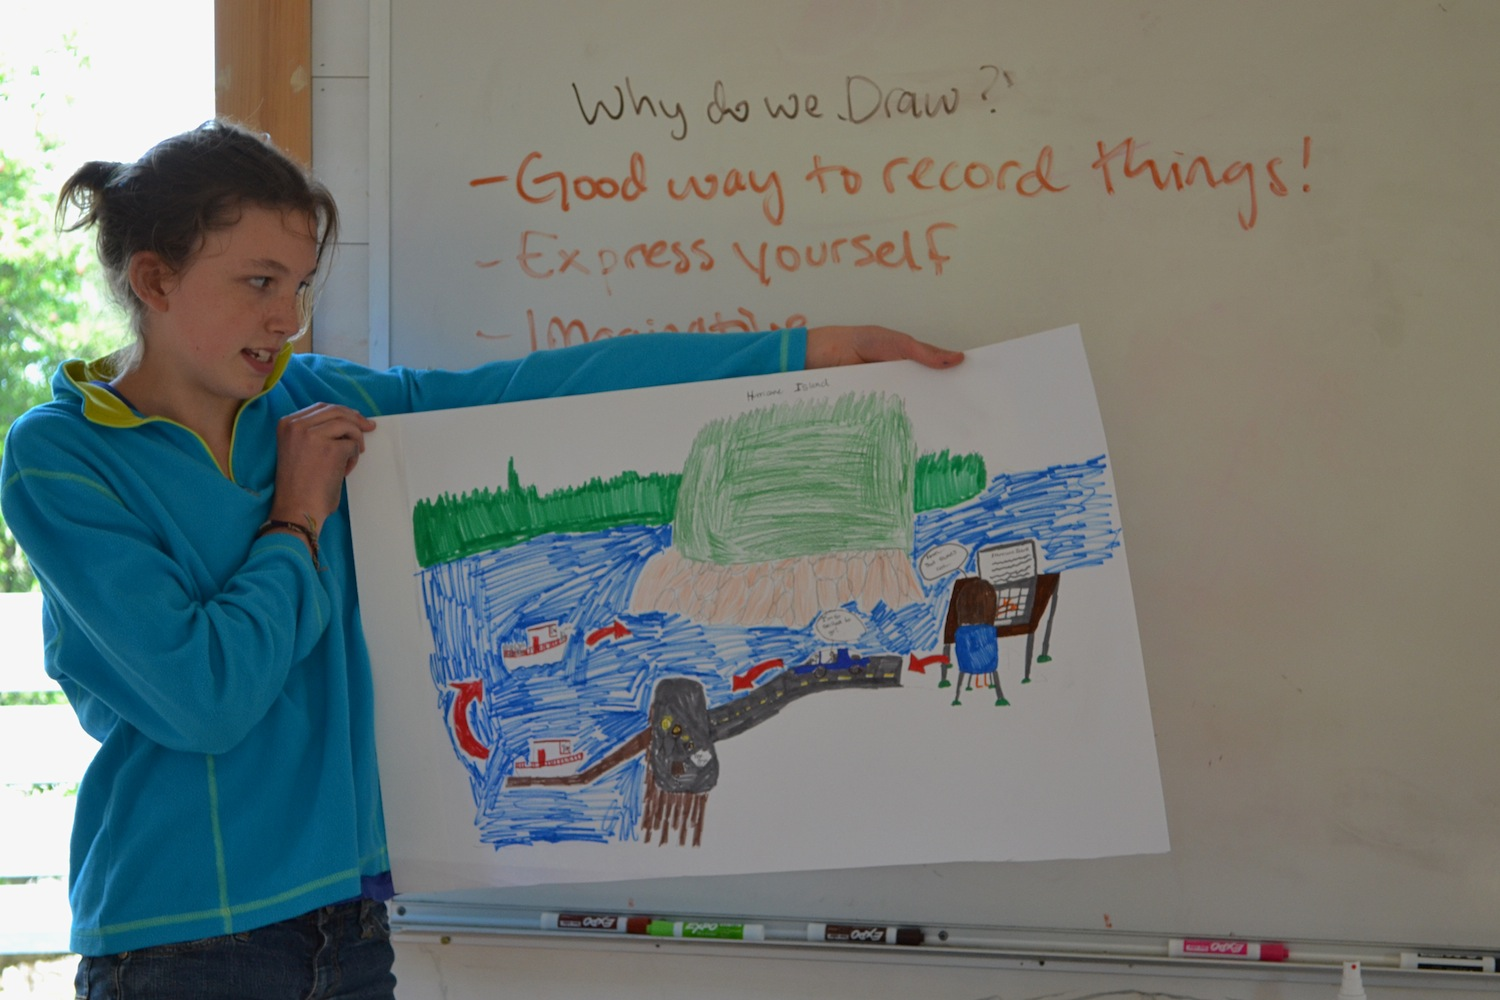 A student shows how she depicted her trip to Hurricane